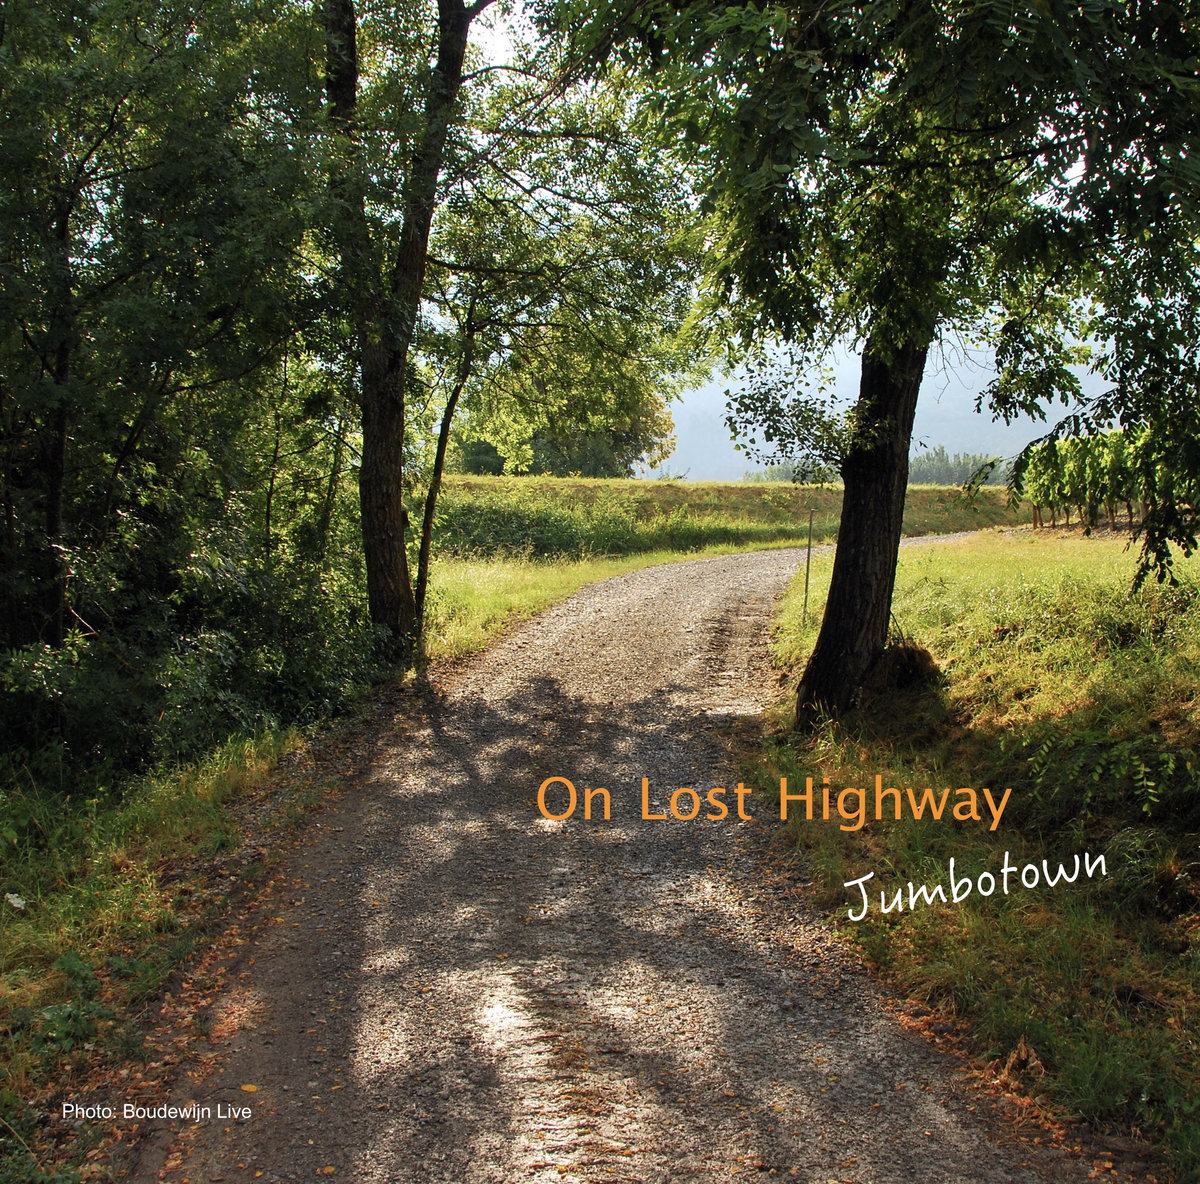 On Lost Highway by Jumbotown